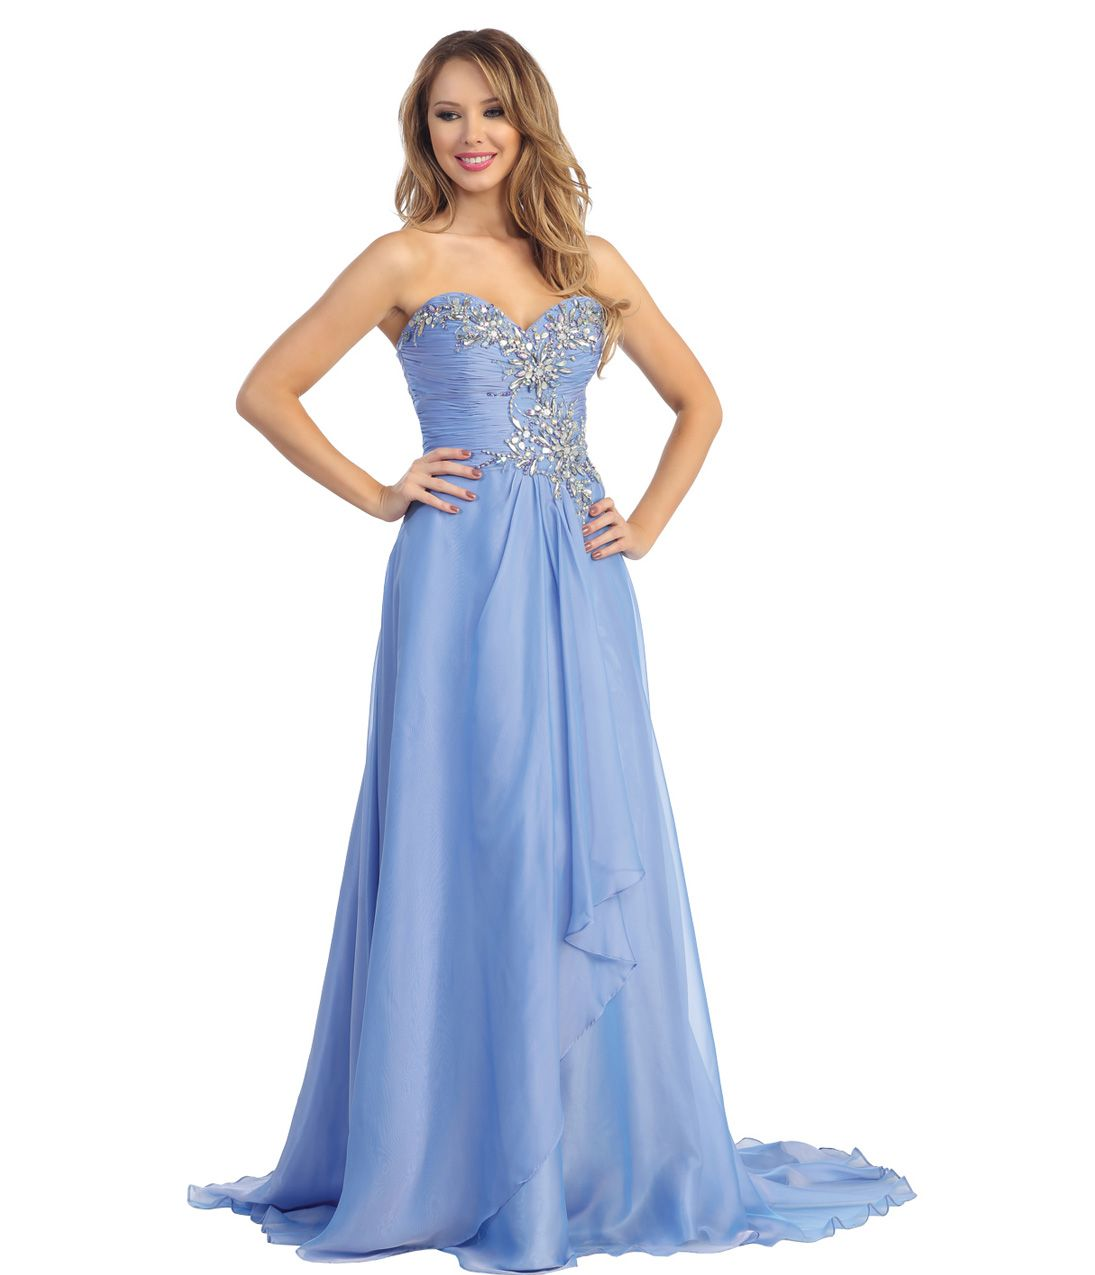 Unique vintage chiffon beading strapless gown and vintage prom